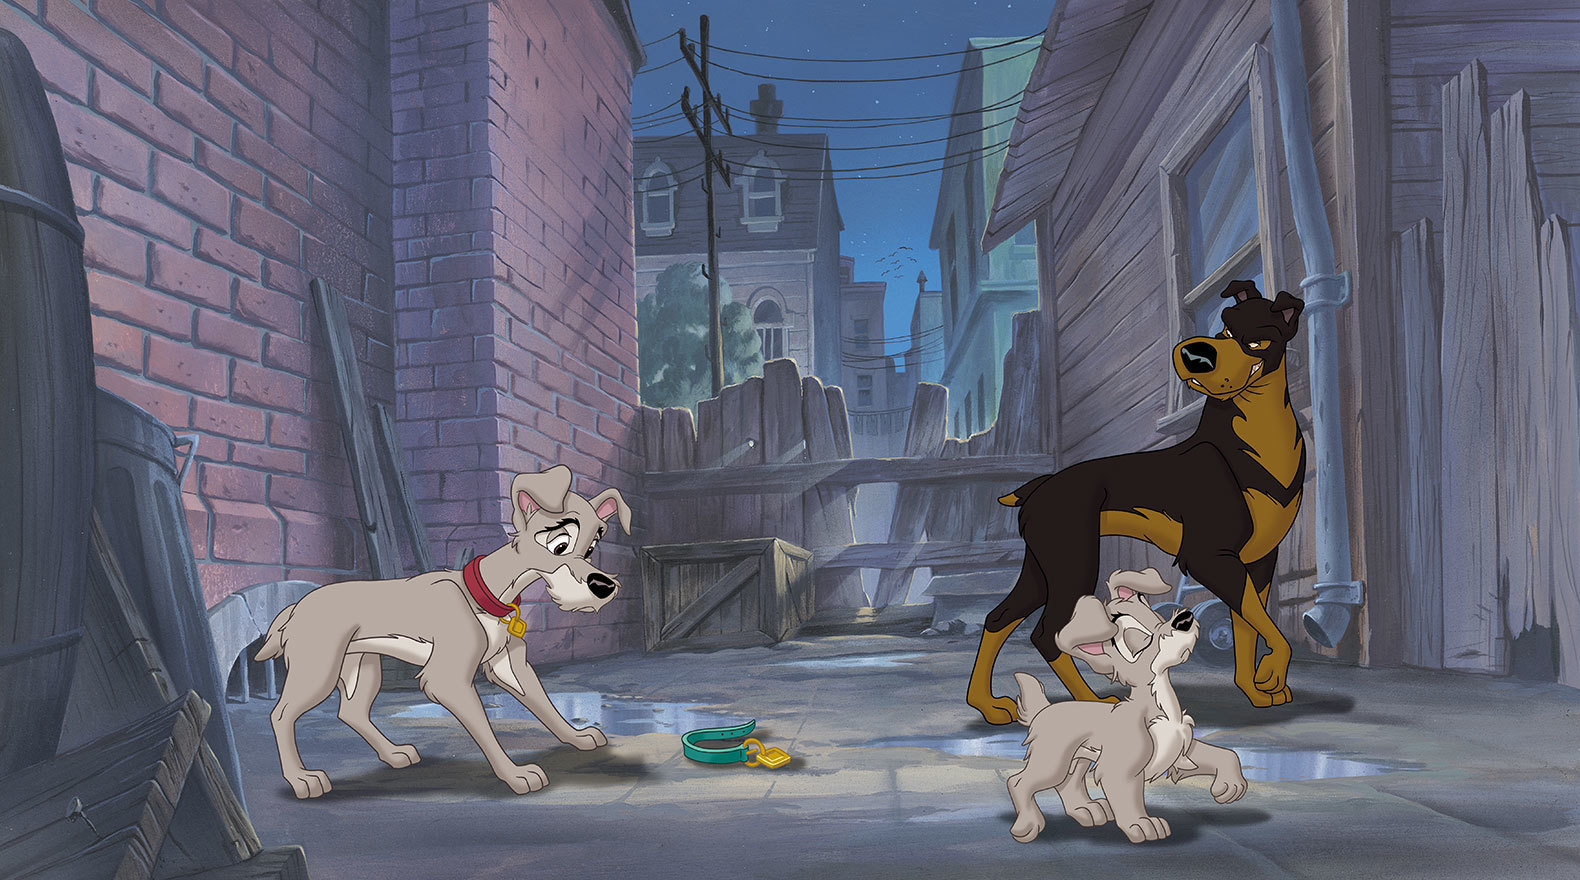 Lady and the Tramp 2 Gallery